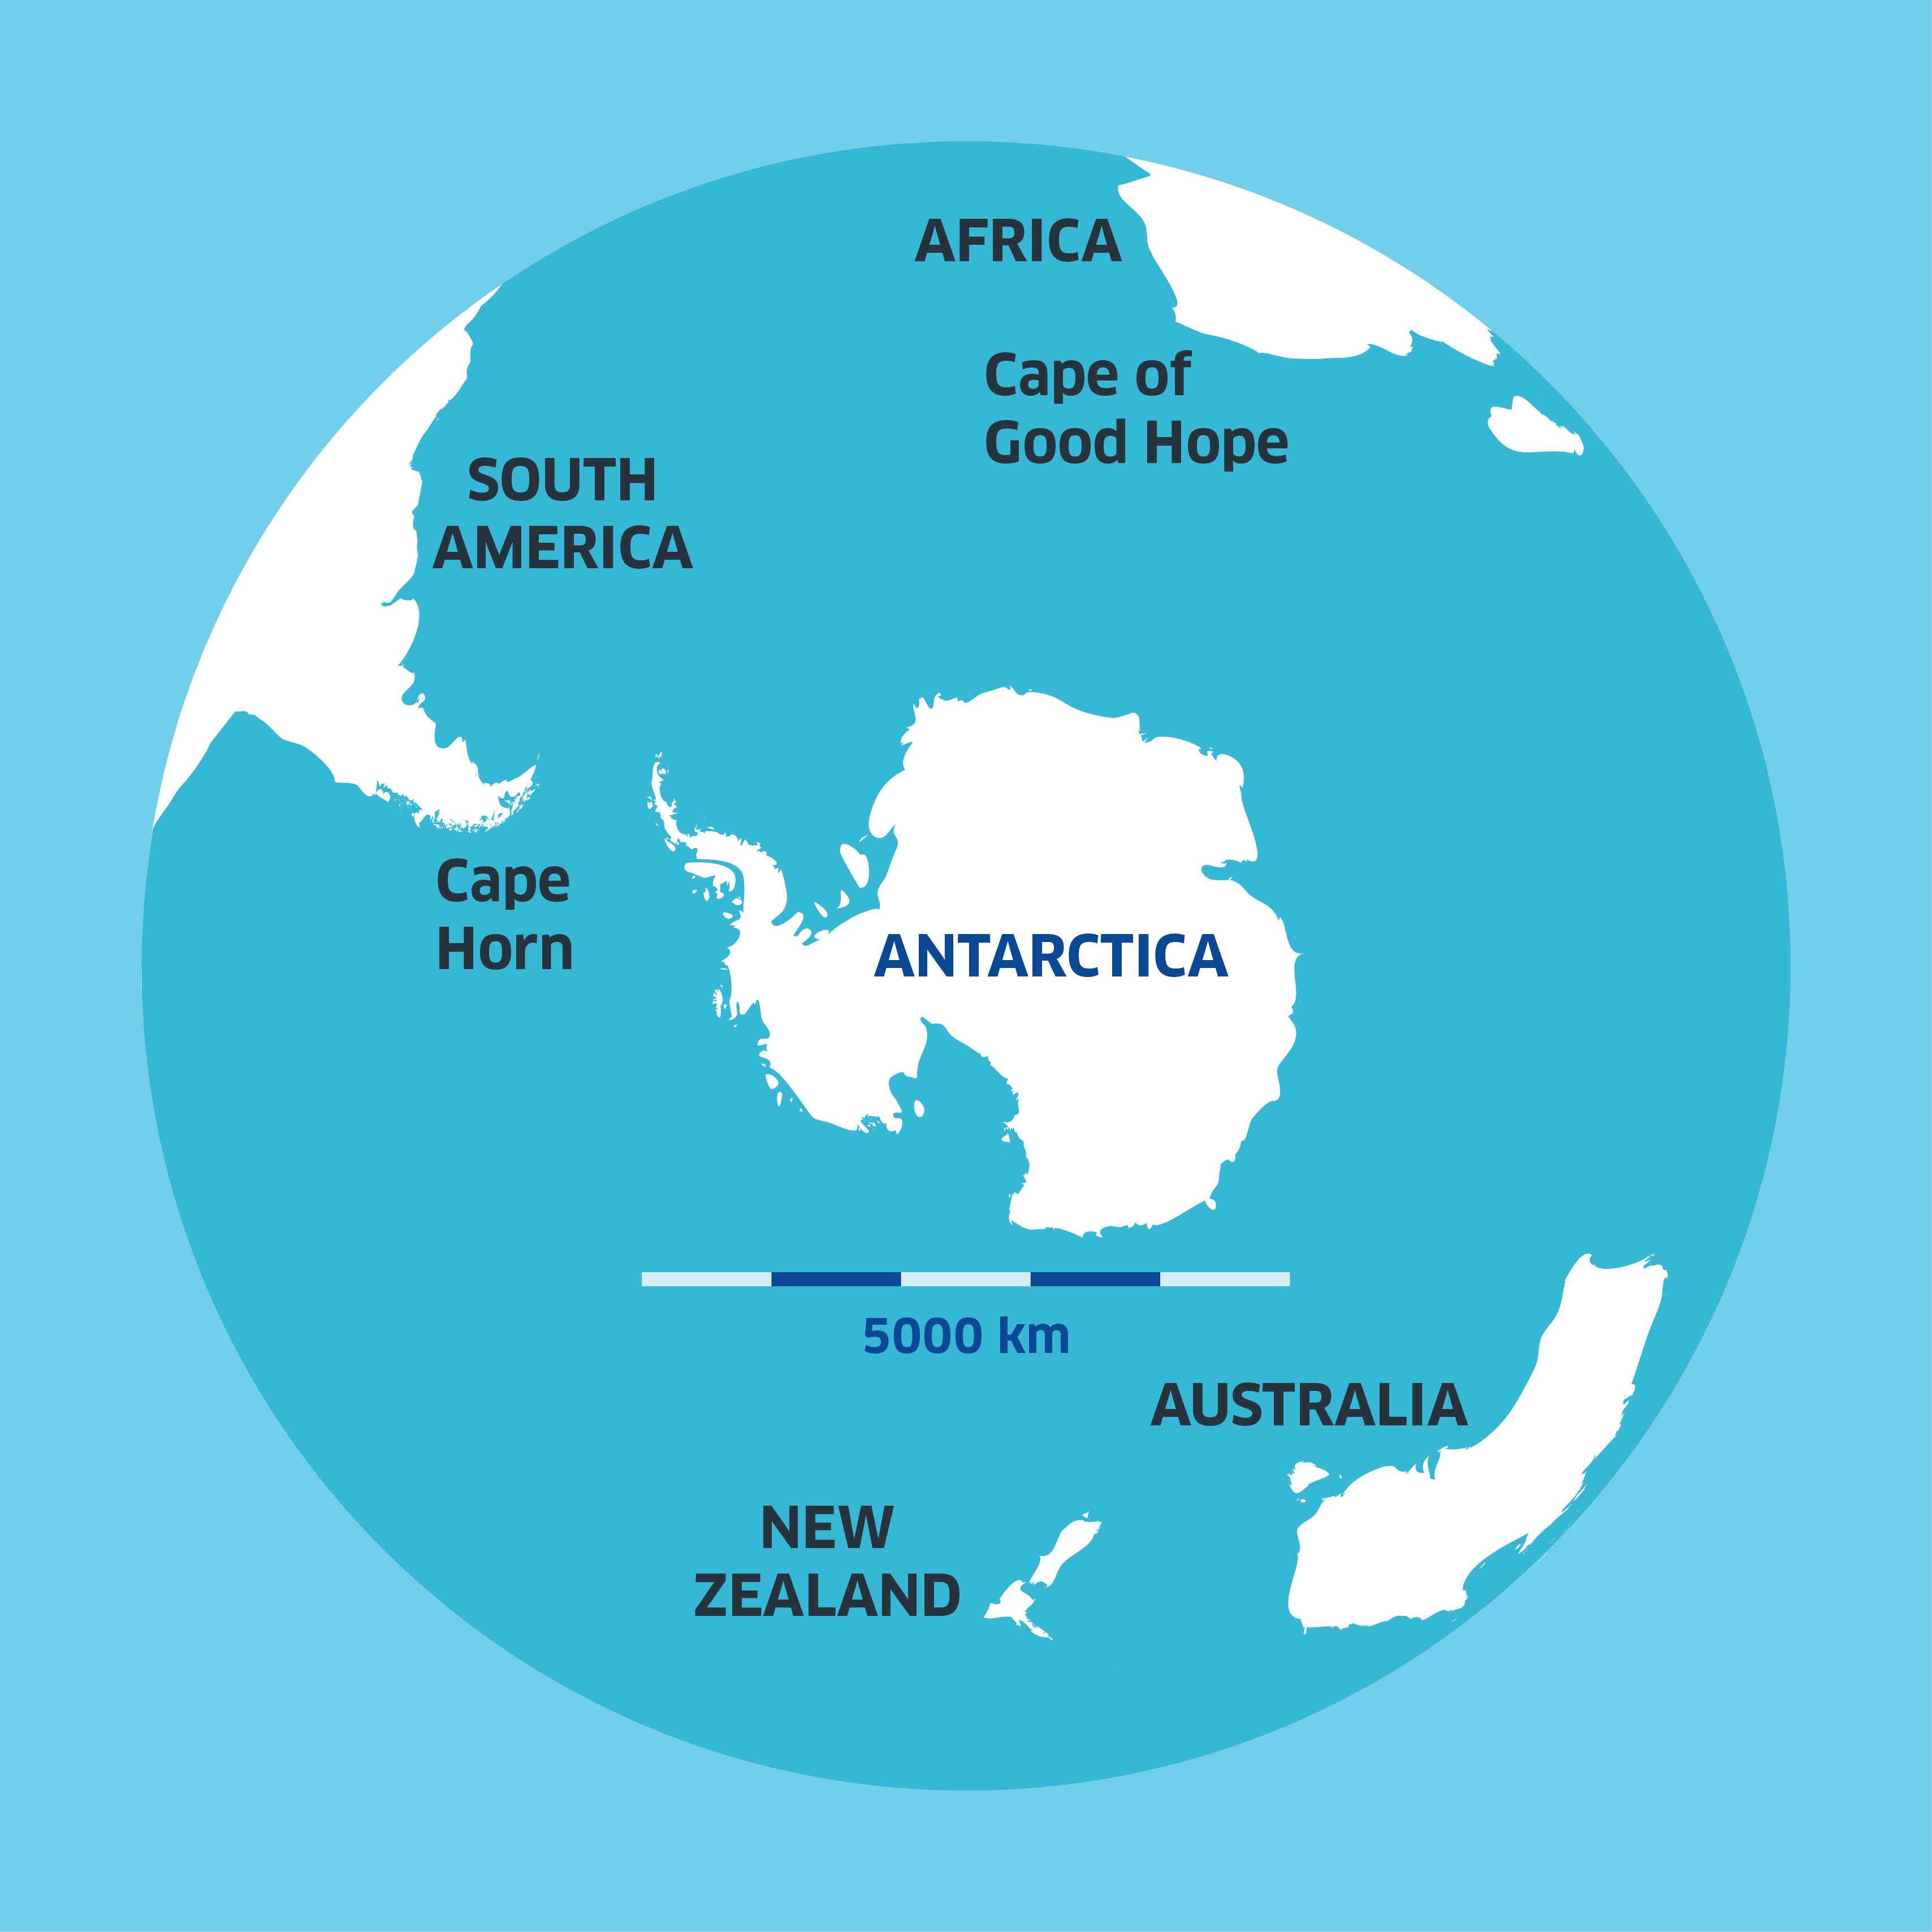 Graphic chart or diagram archives page 2 of 5 discovering antarctica world upside down map antarctica on the globe gumiabroncs Image collections